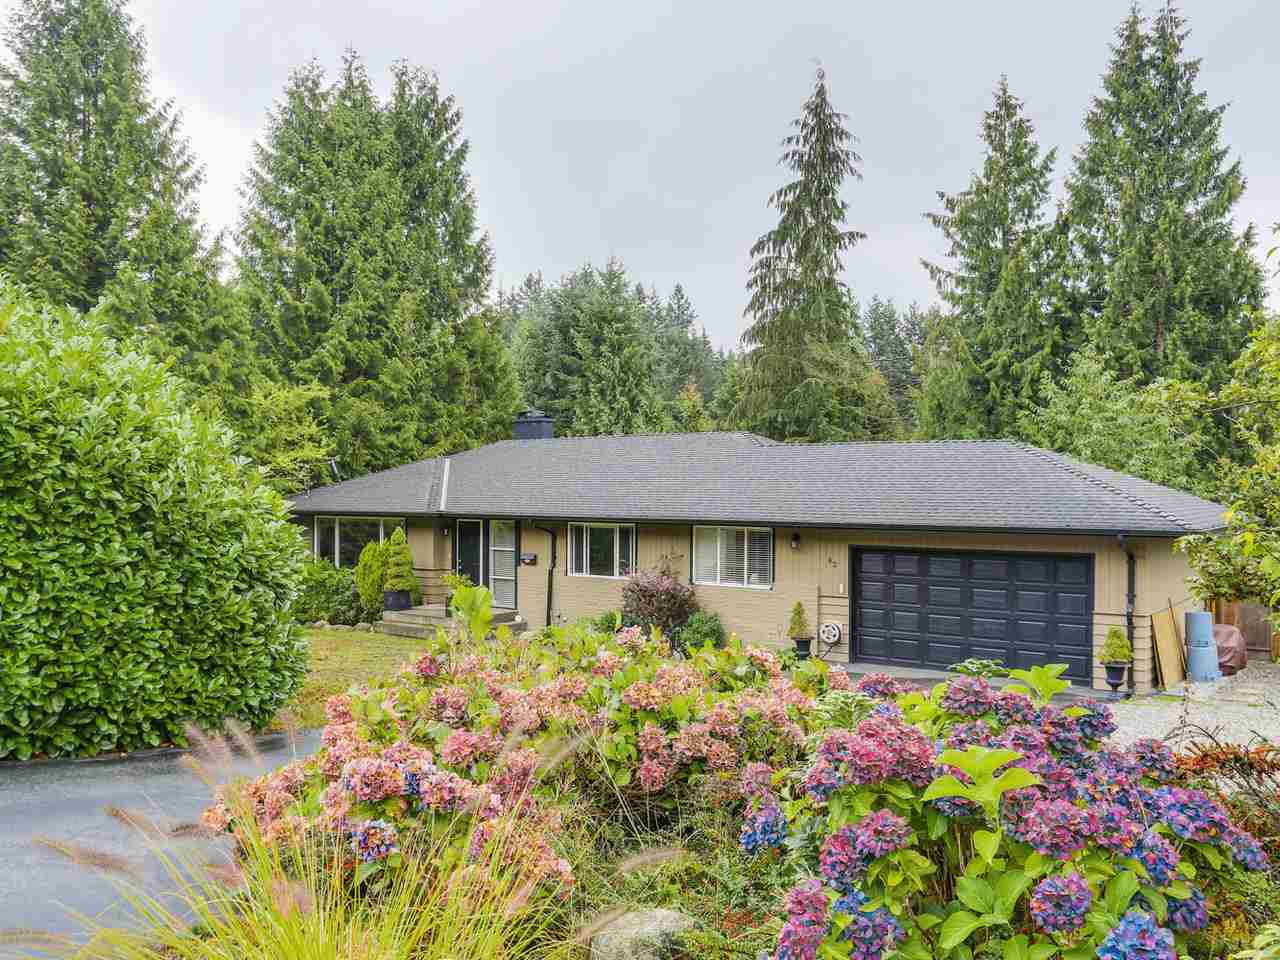 82 GLENGARRY Glenmore, West Vancouver (R2156939)